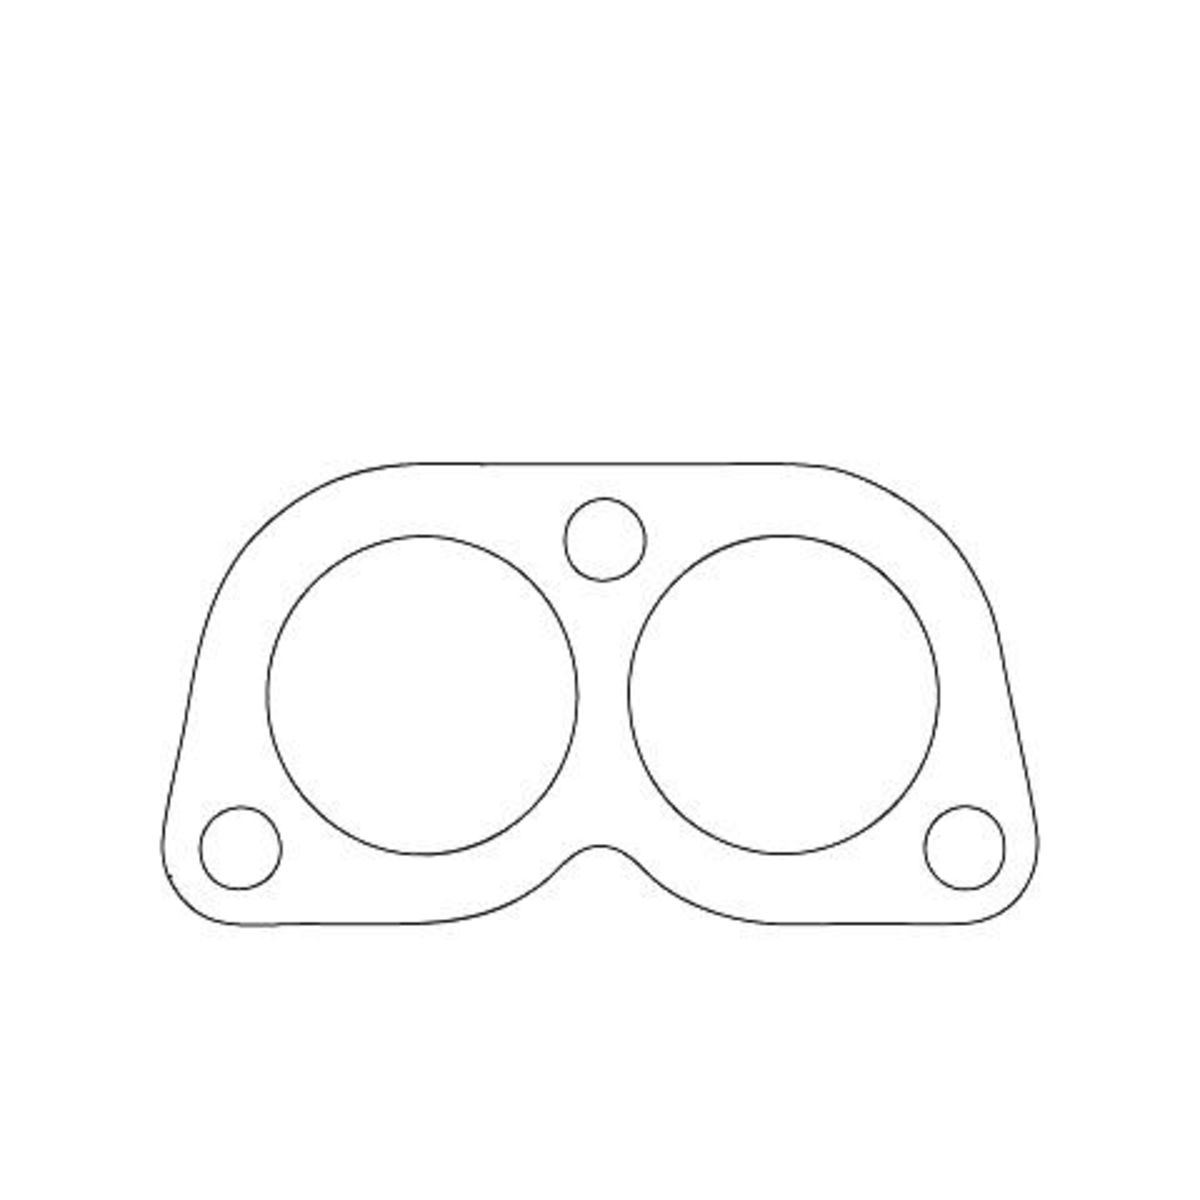 Redback Gaskets Flange to suit Nissan 280ZX (01/1978 - 01/1984)